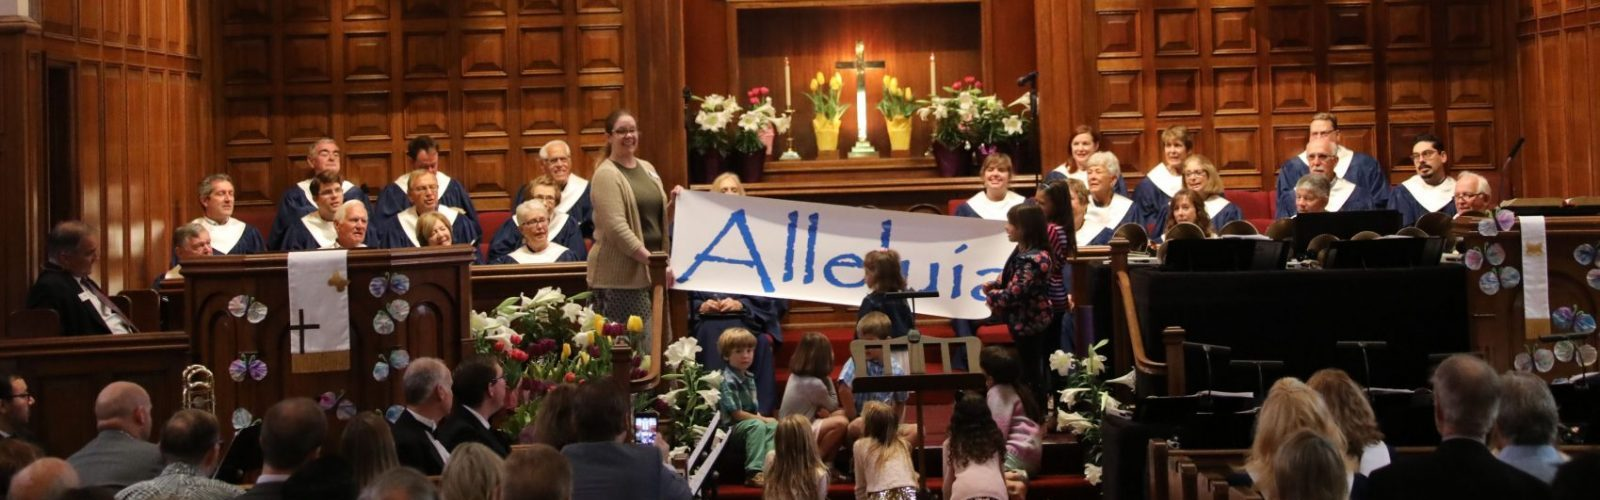 Bay Shore Community Congregational Church (UCC) in Long Beach, CaliforniaEaster Worship Service with Alleluia banner at